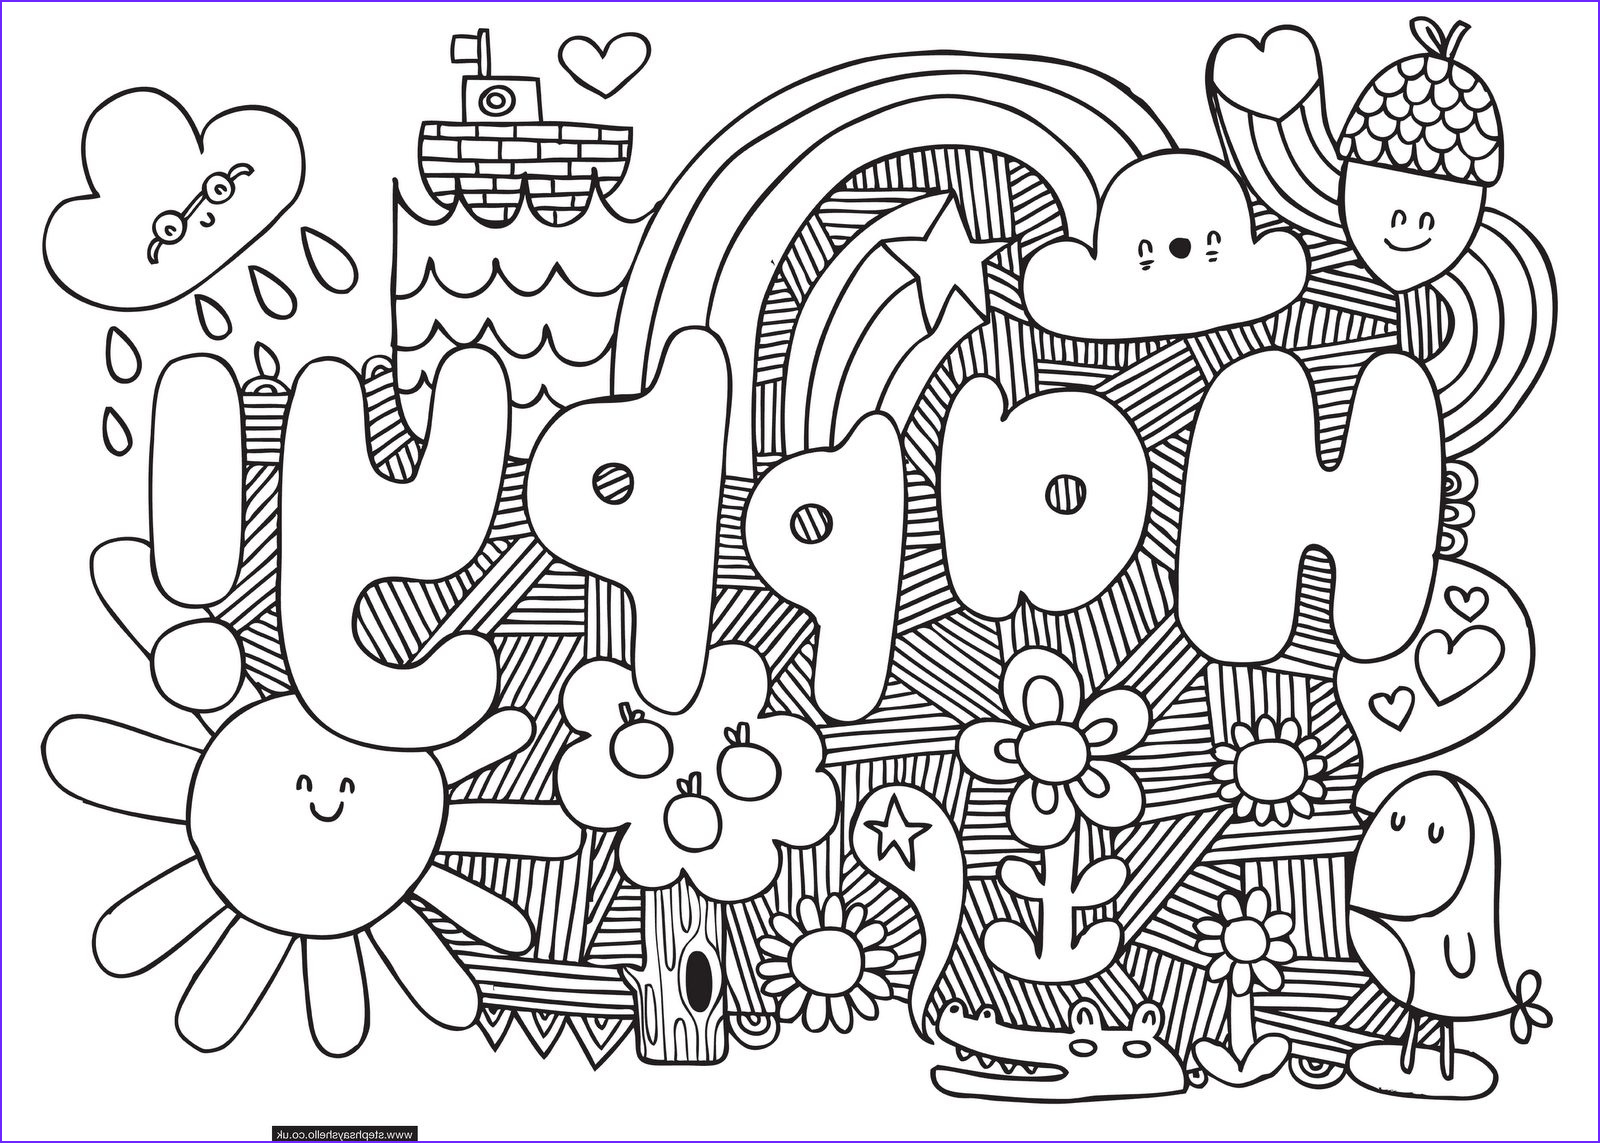 embroidery patterns new discovery